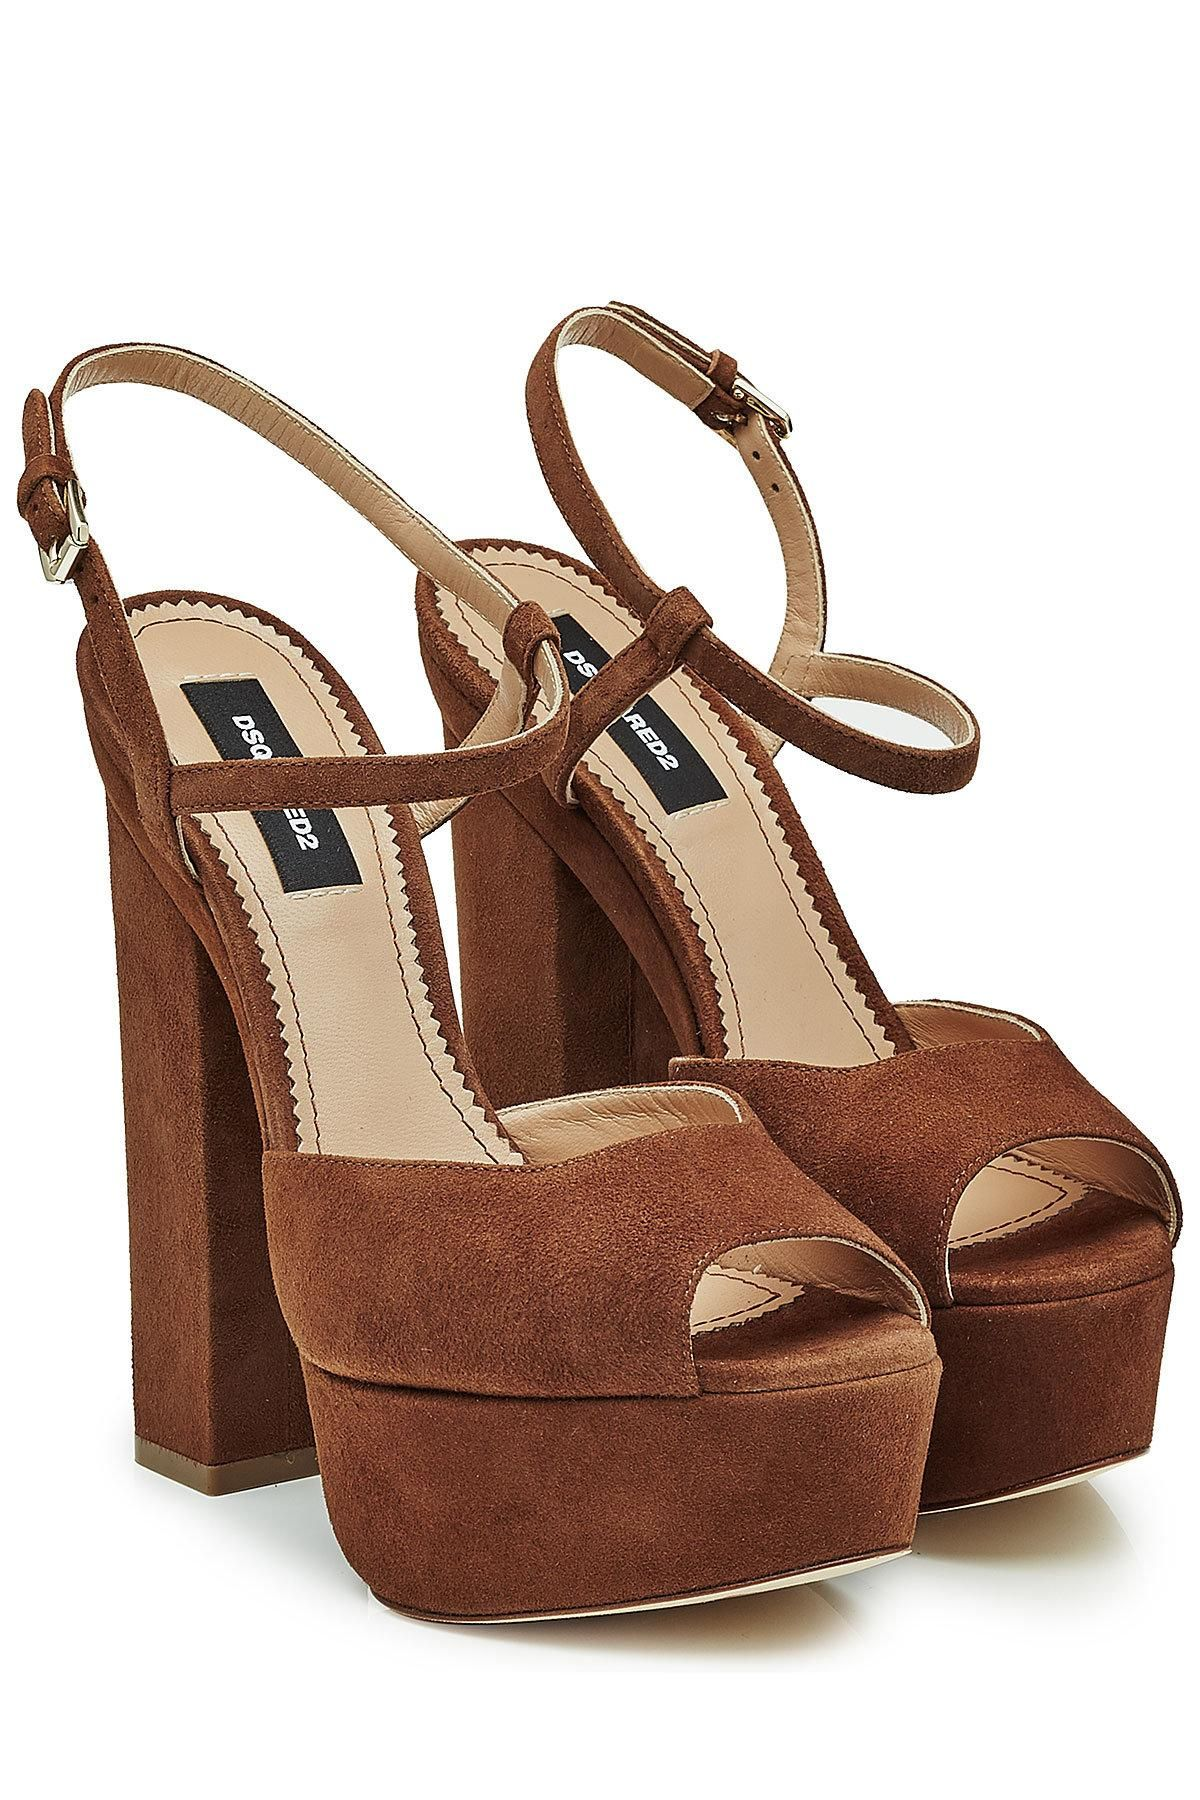 Largest Supplier Dsquared2 Suede Platform Sandals Buy Cheap Sale MKH9DeSmW4